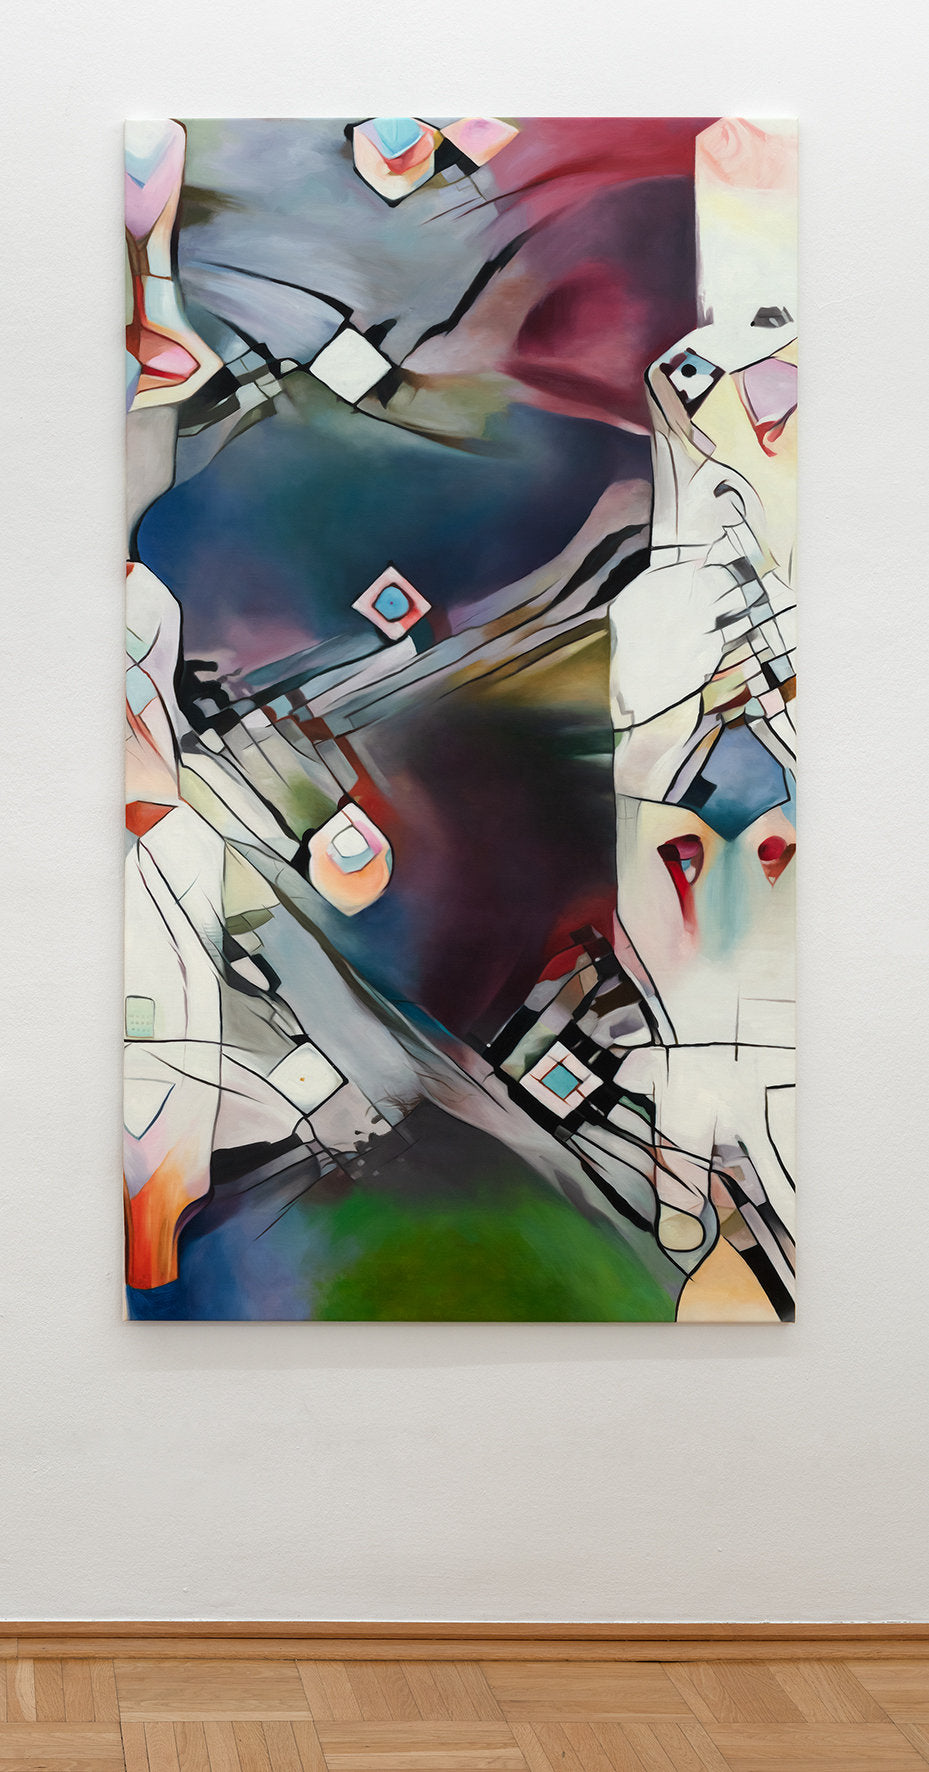 MIAO YING - Data Breach Deep Abstraction #2, 2019